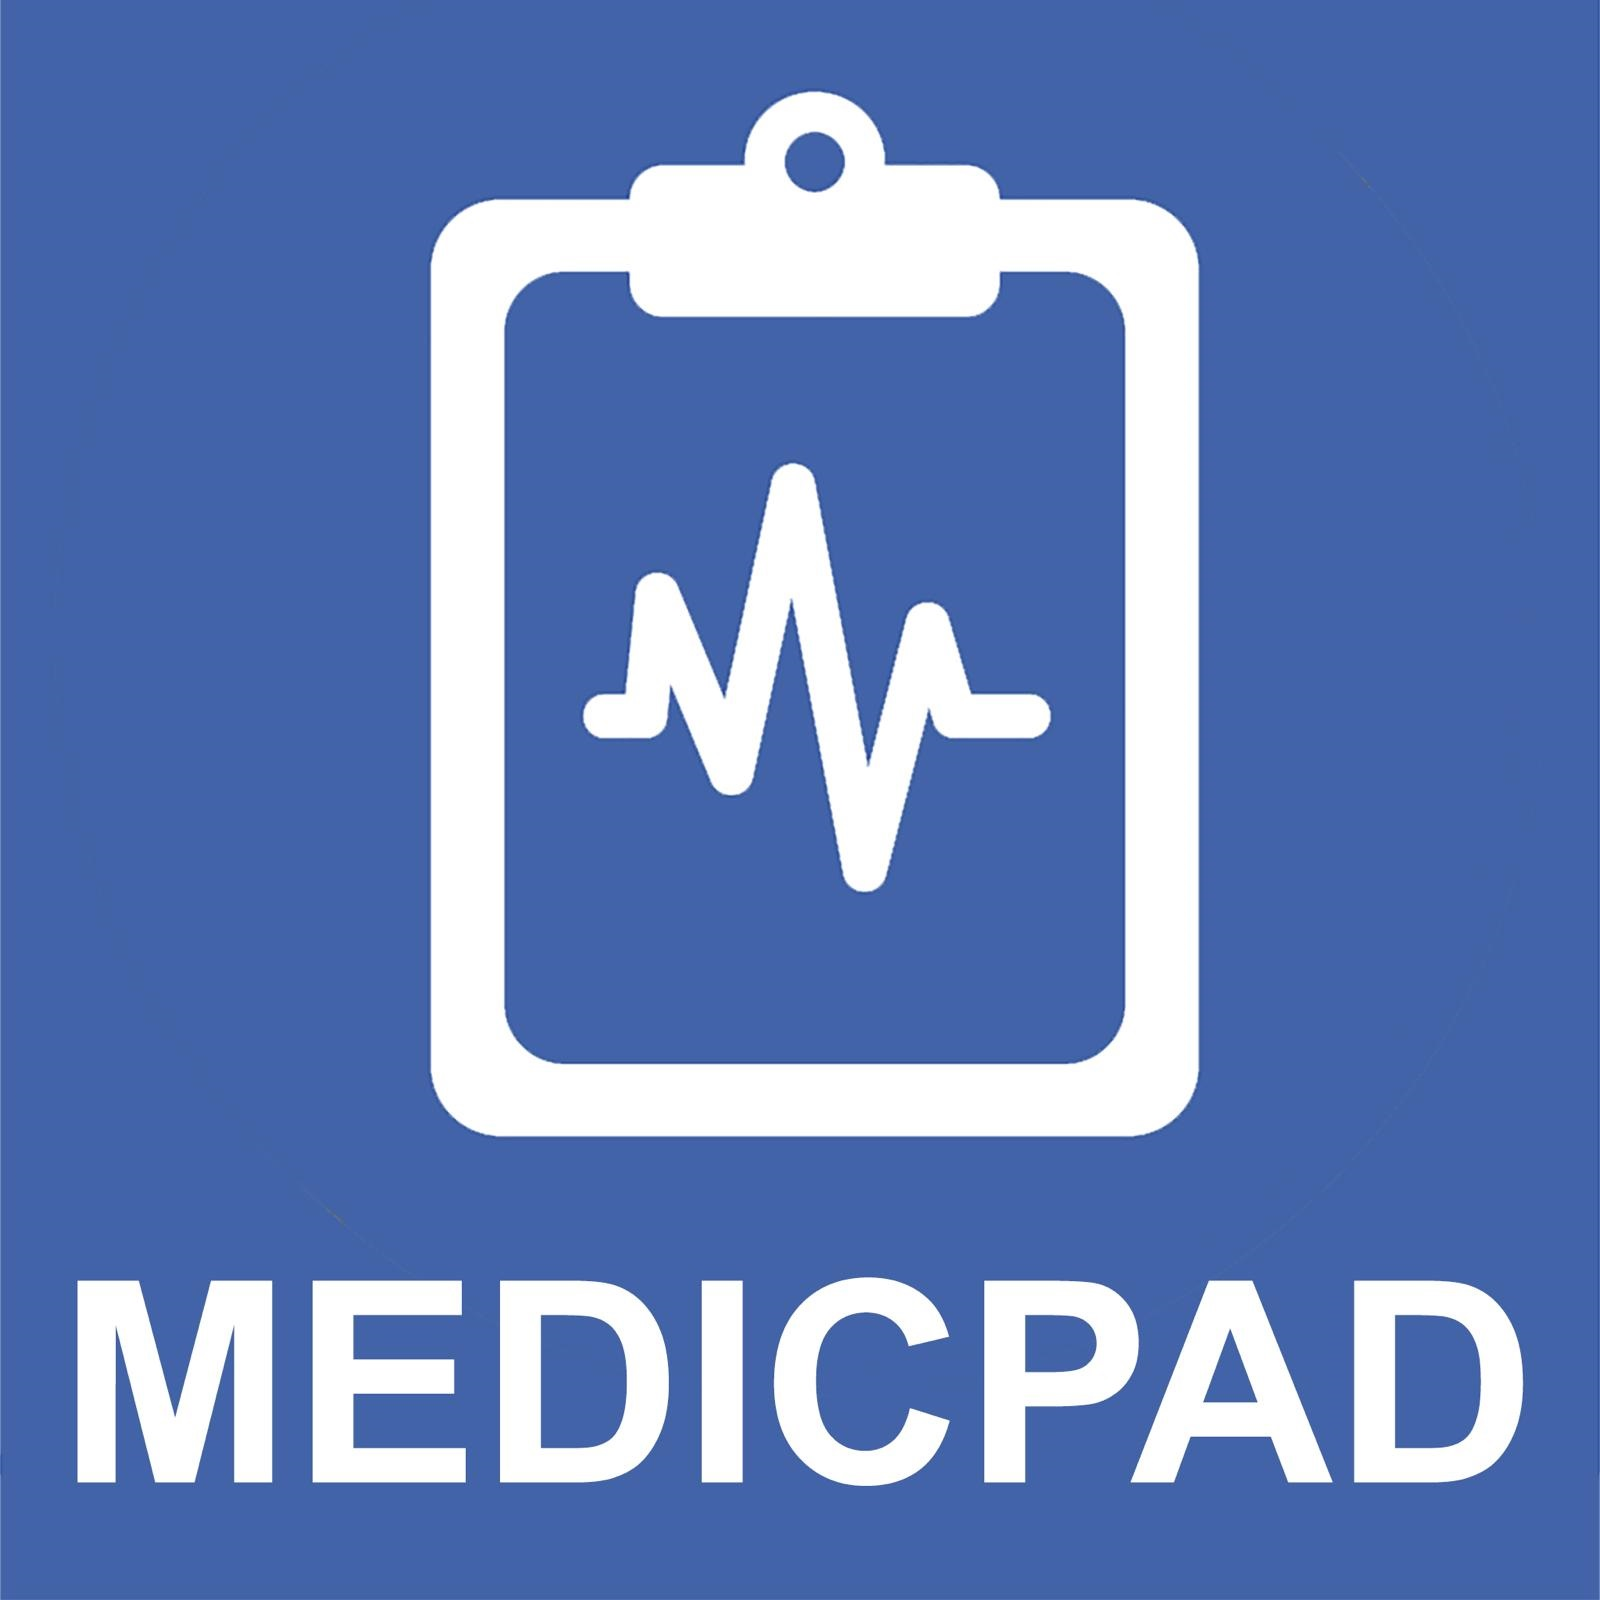 From idea to healthcare revolution in 7 days. The story of MedicPad